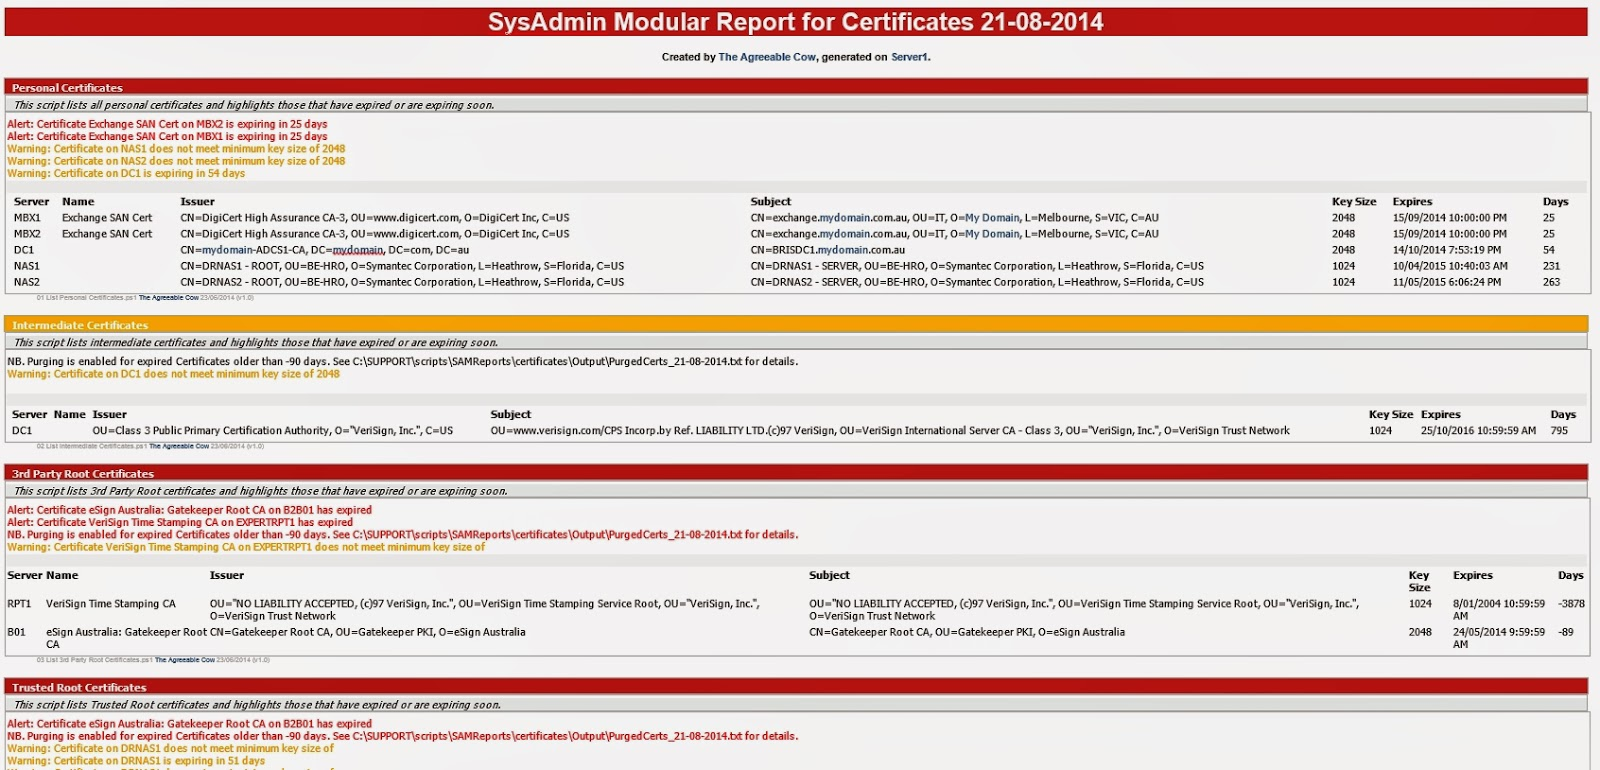 Theagreeablecow sysadmin modular report for ssl certificates now sample report showing plugins for the stores in a typical certificate chain xflitez Image collections